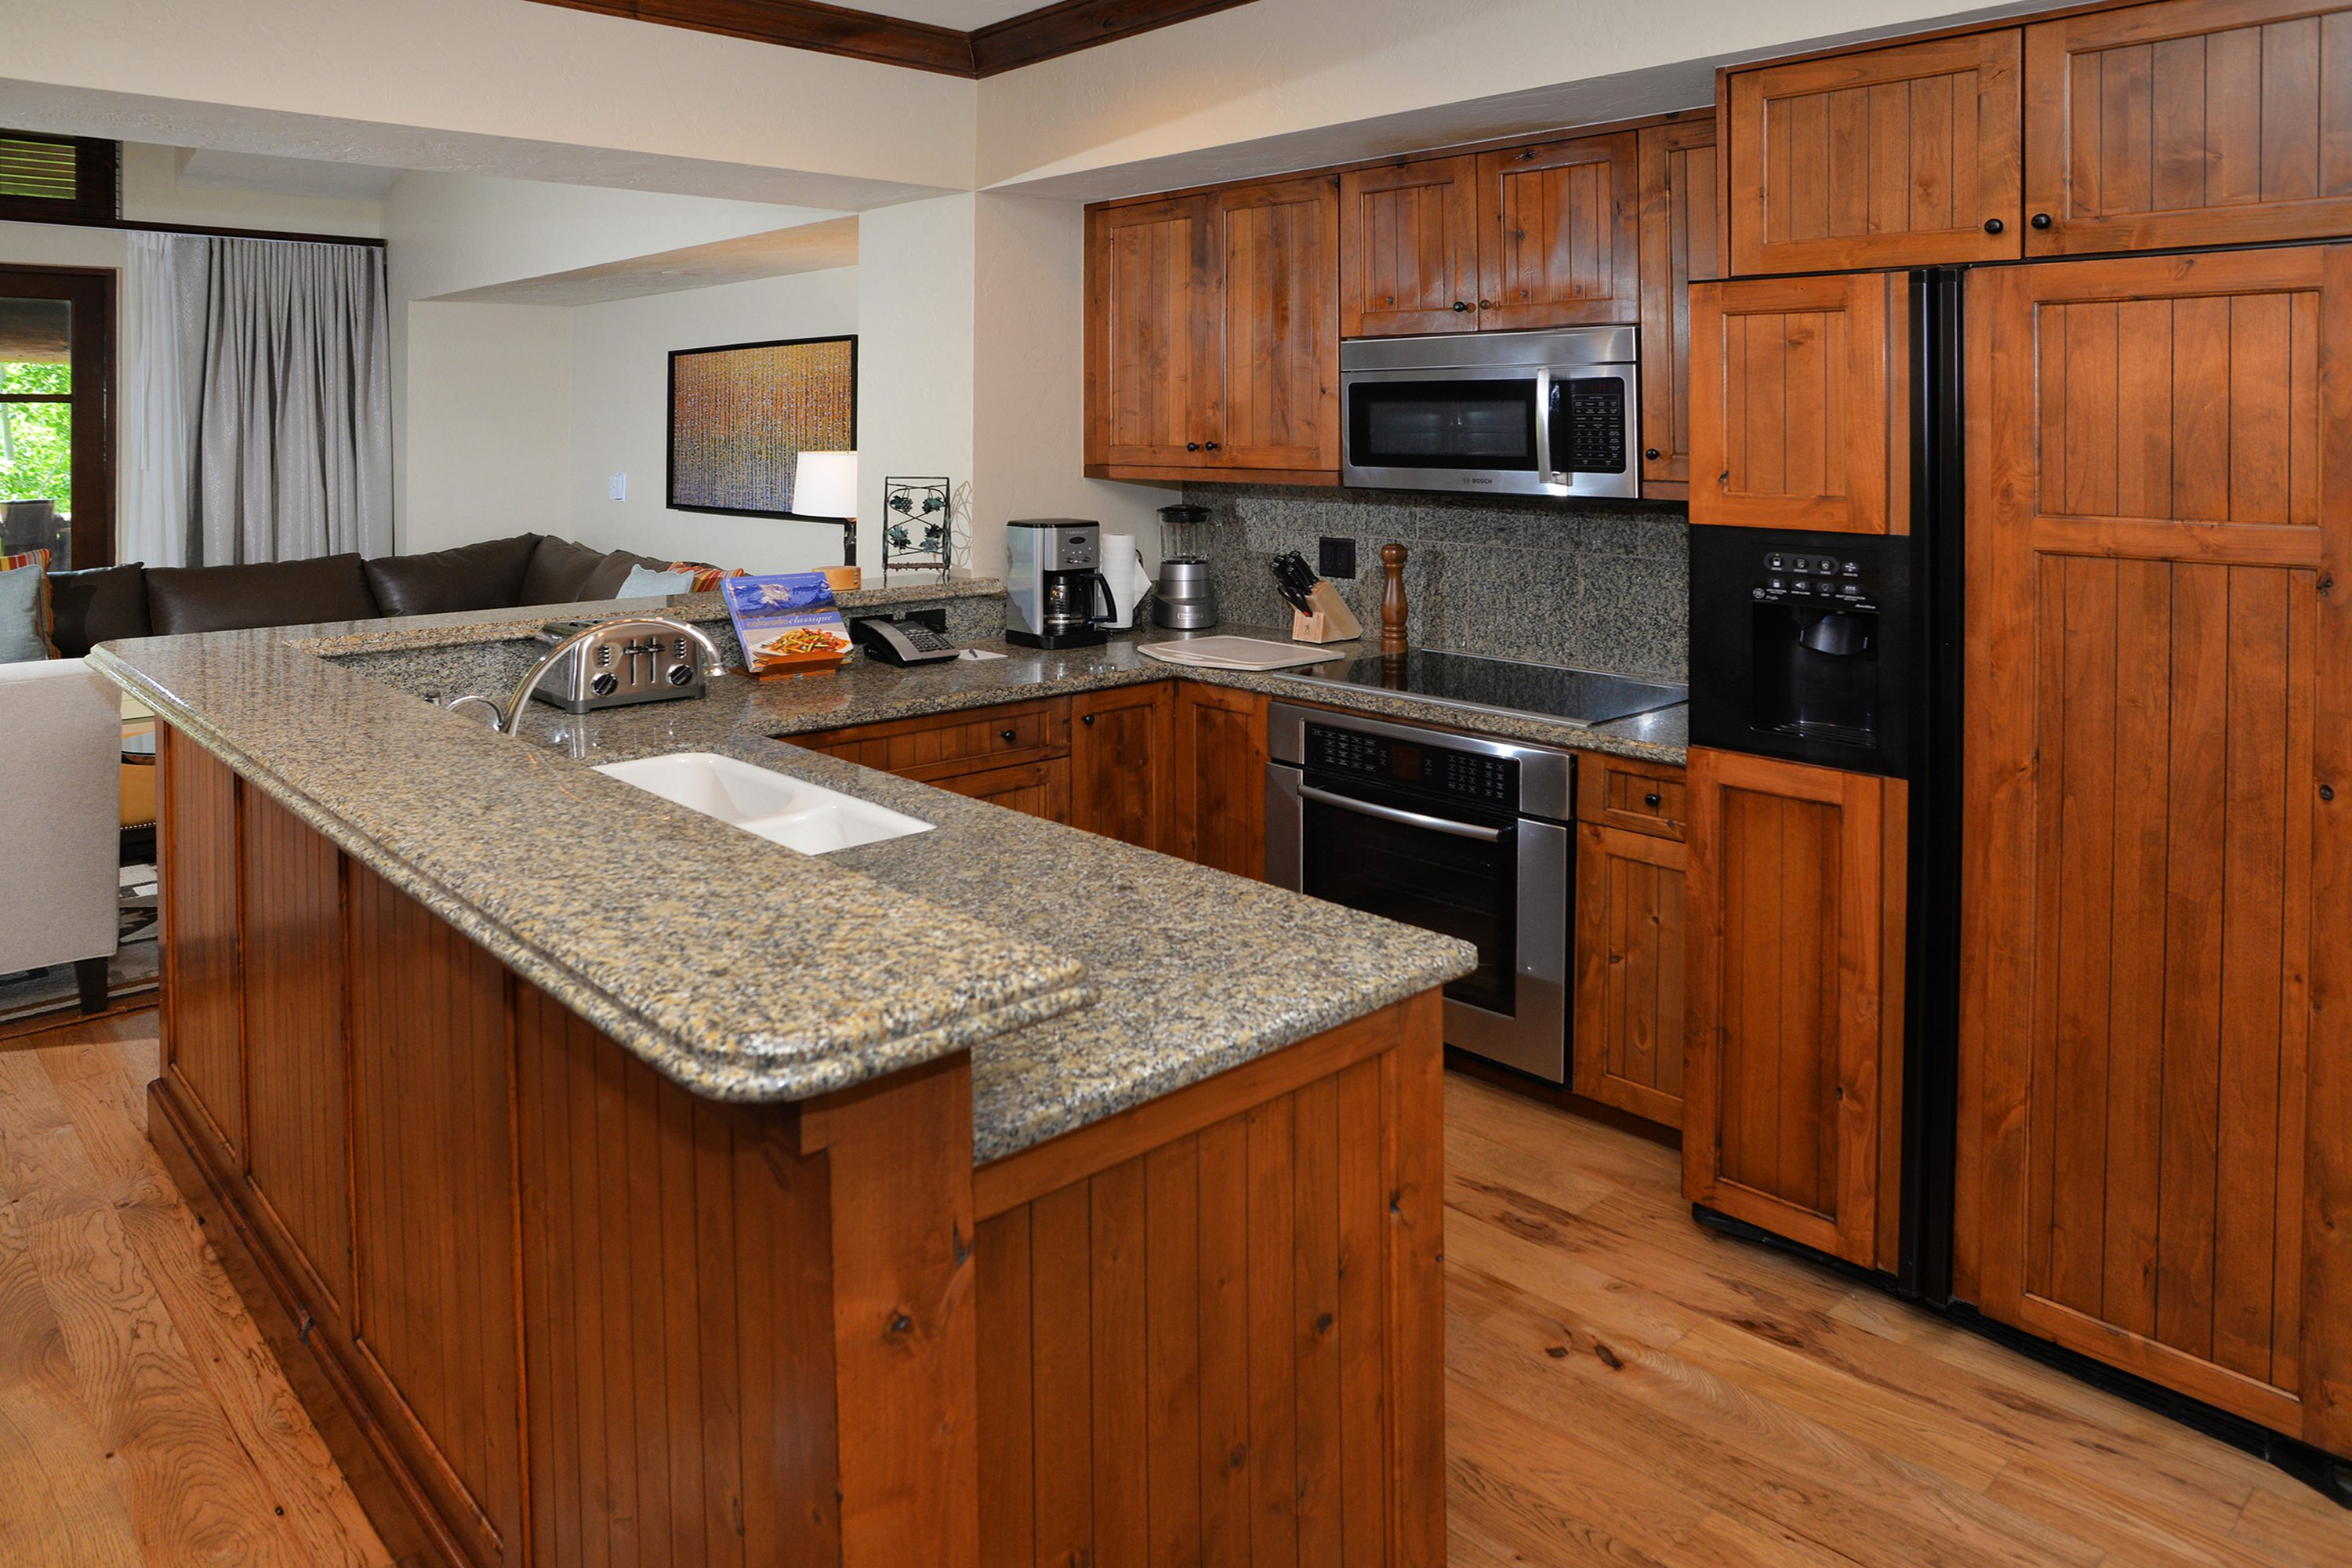 Timbers Bachelor Gulch 3505 - 3 bed Mountain Rental